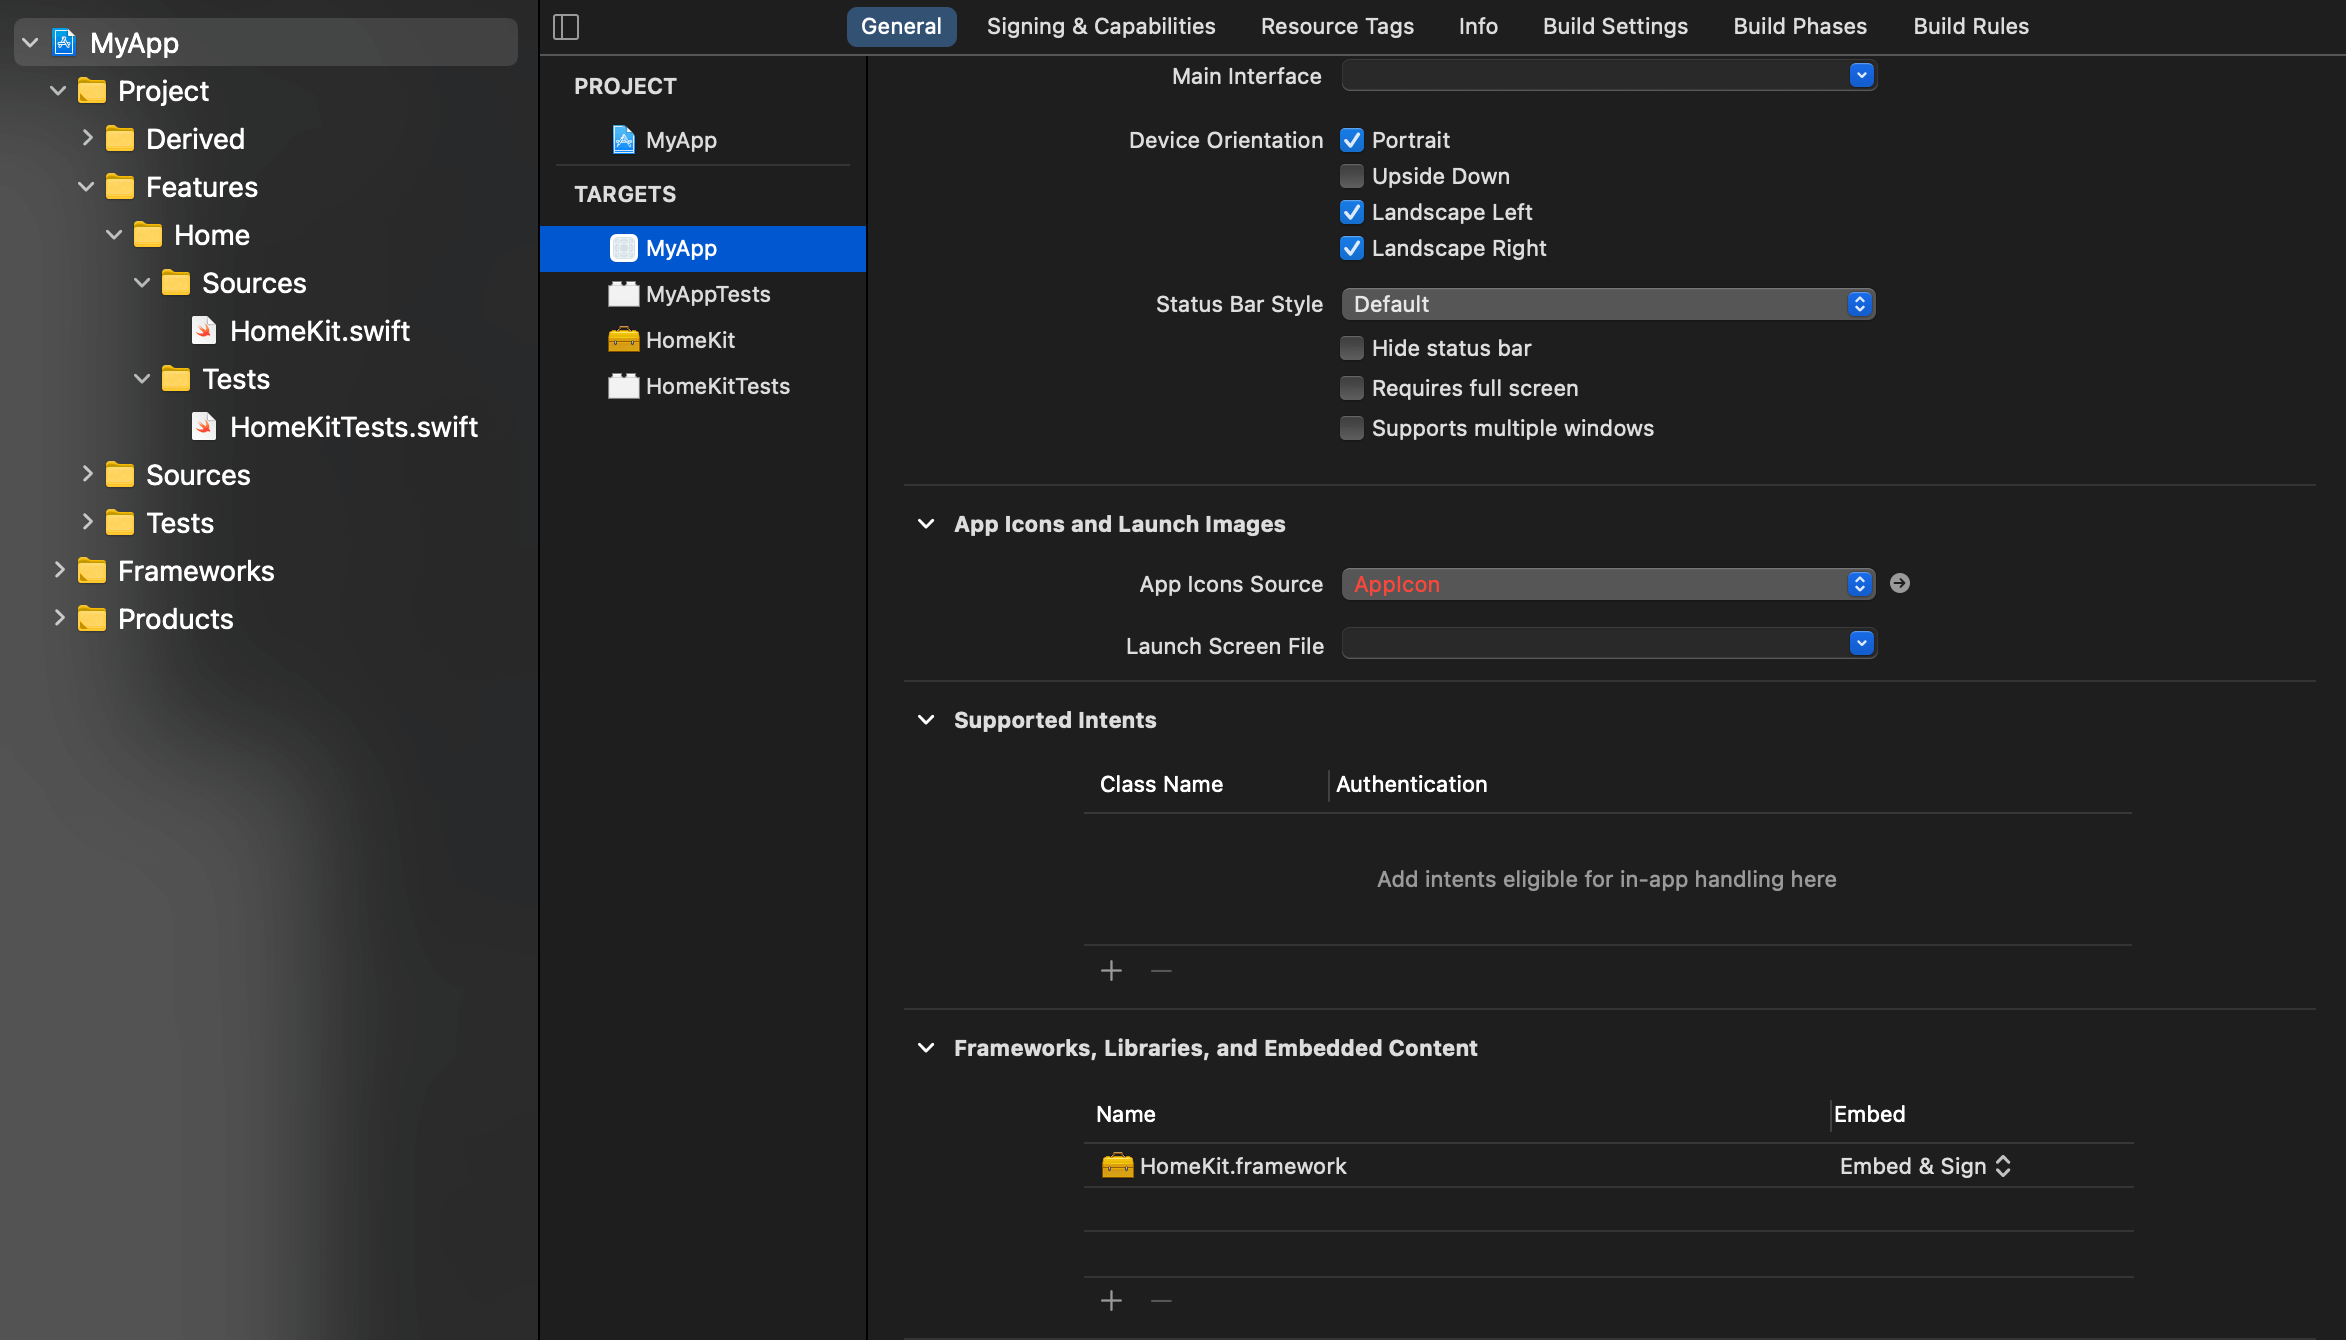 Files and targets are properly added to the project.